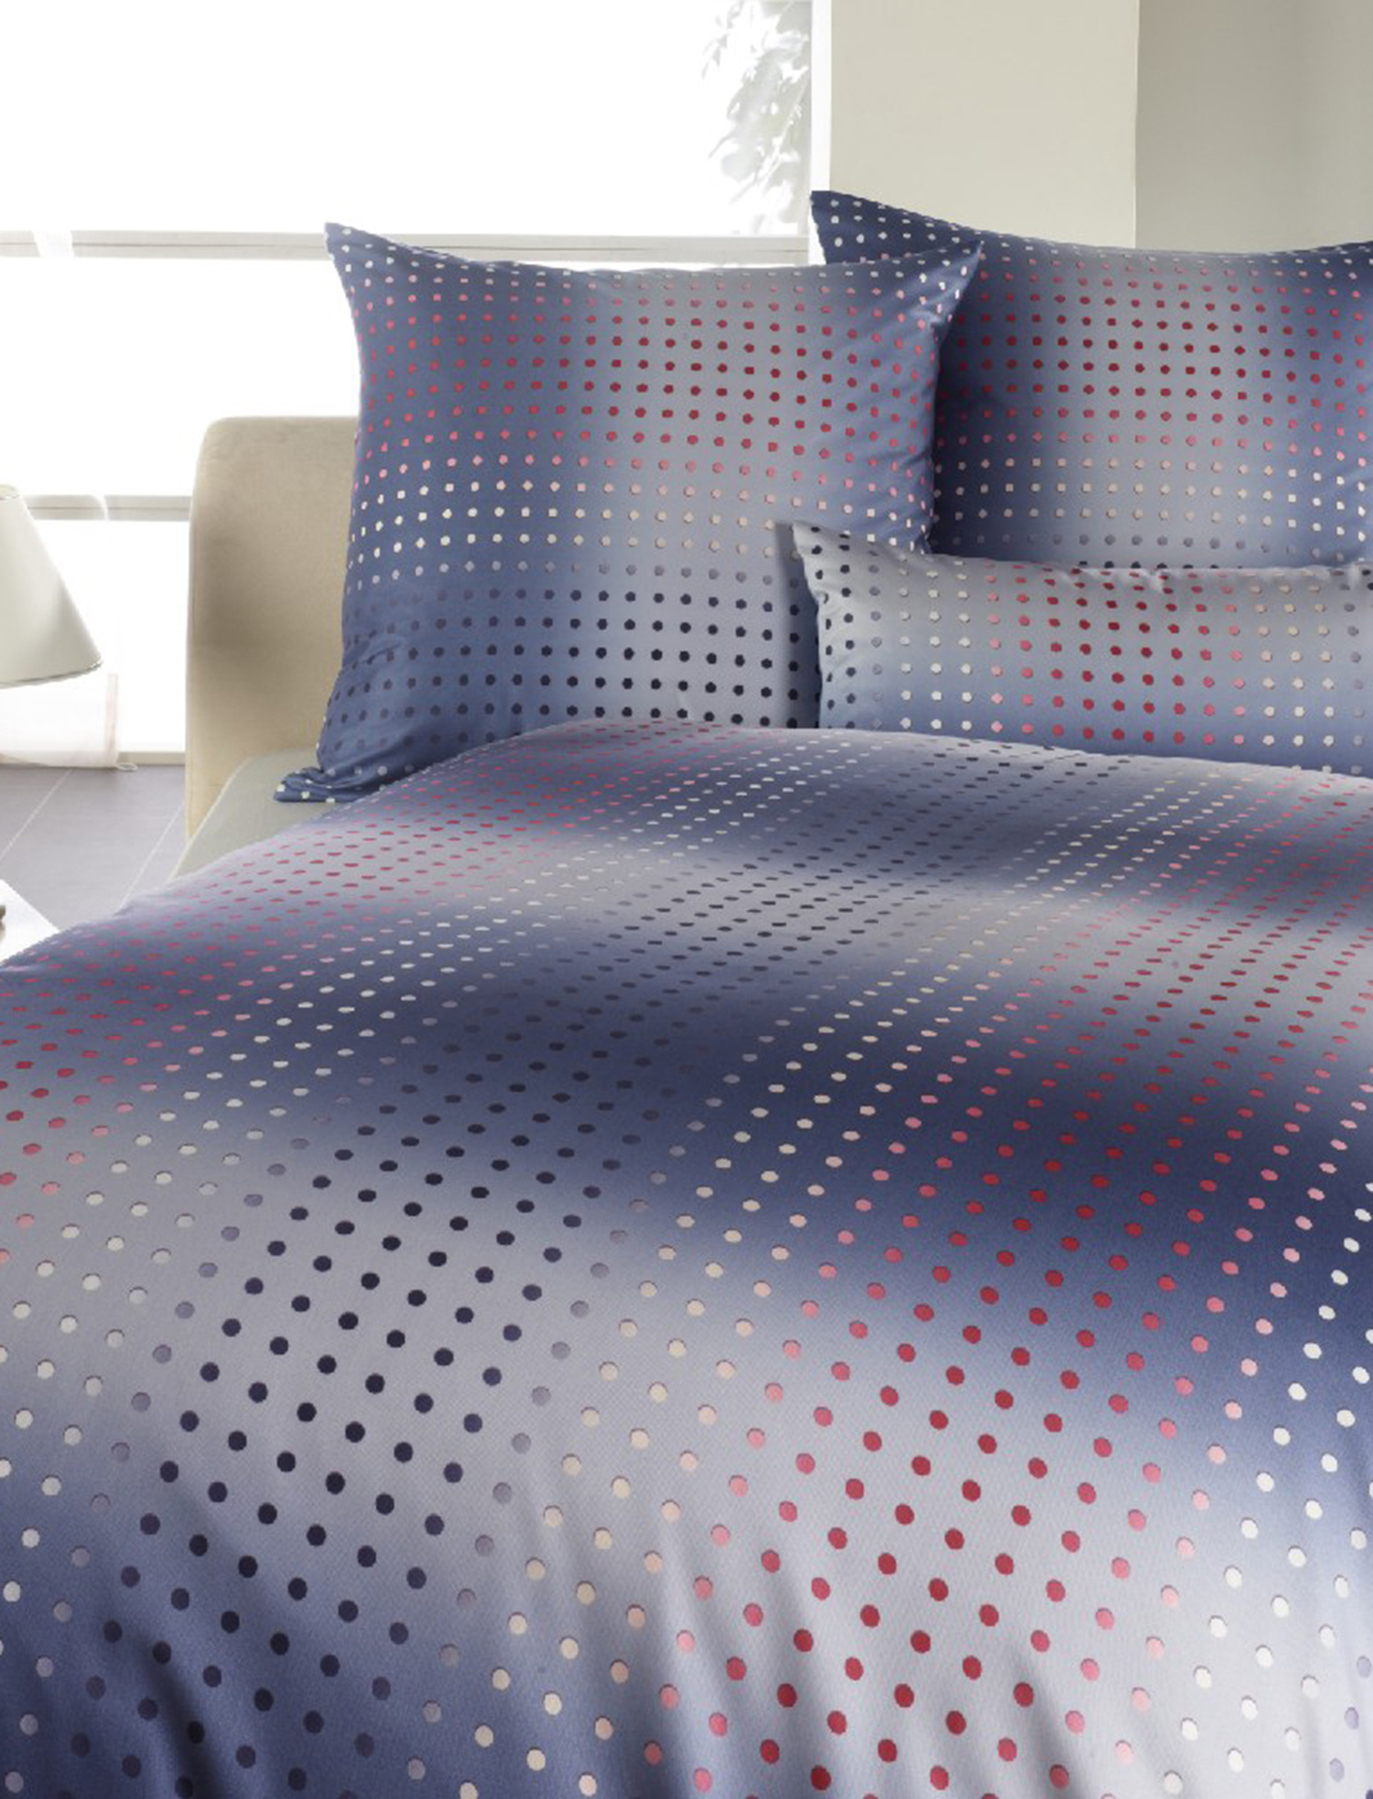 curt bauer mako jersey bettw sche kissenbez ge dots 135x200 80x80 40x80 cm ebay. Black Bedroom Furniture Sets. Home Design Ideas